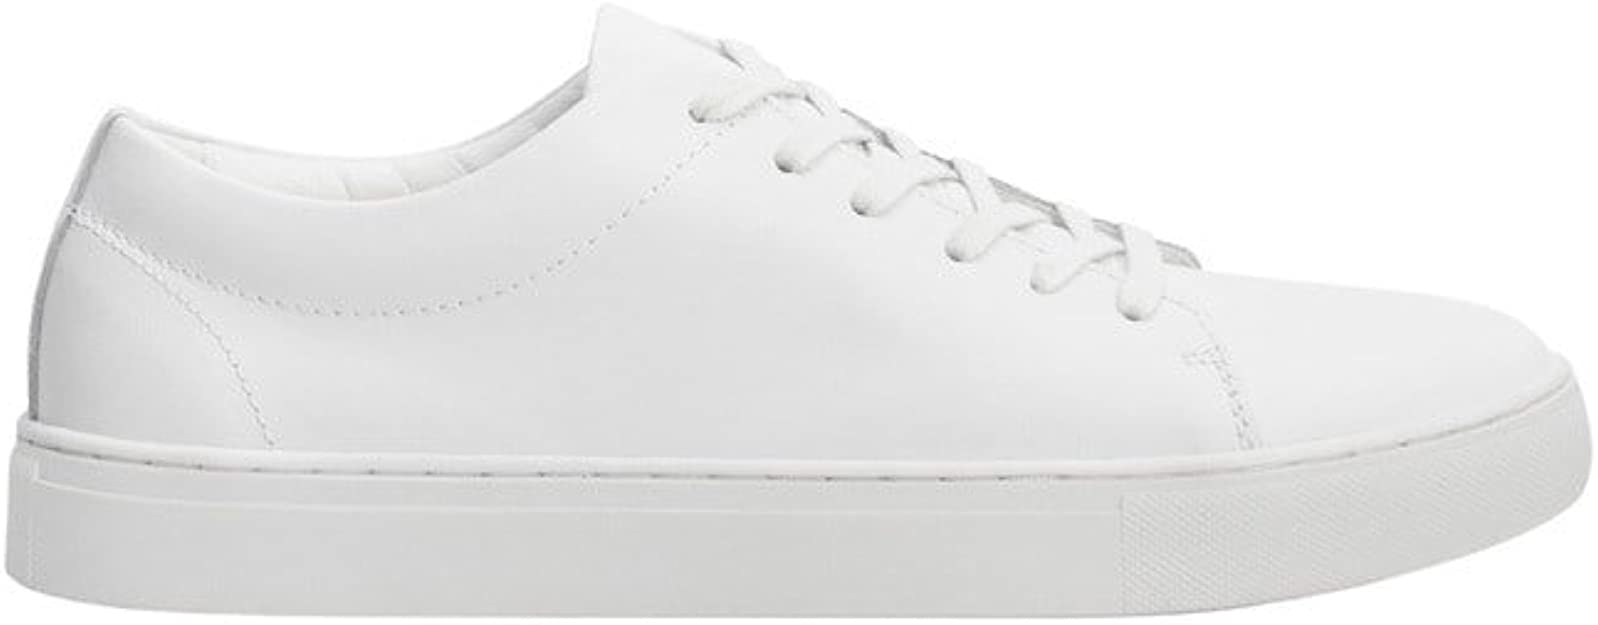 Lace-up leather Shoes Trainers sneakers